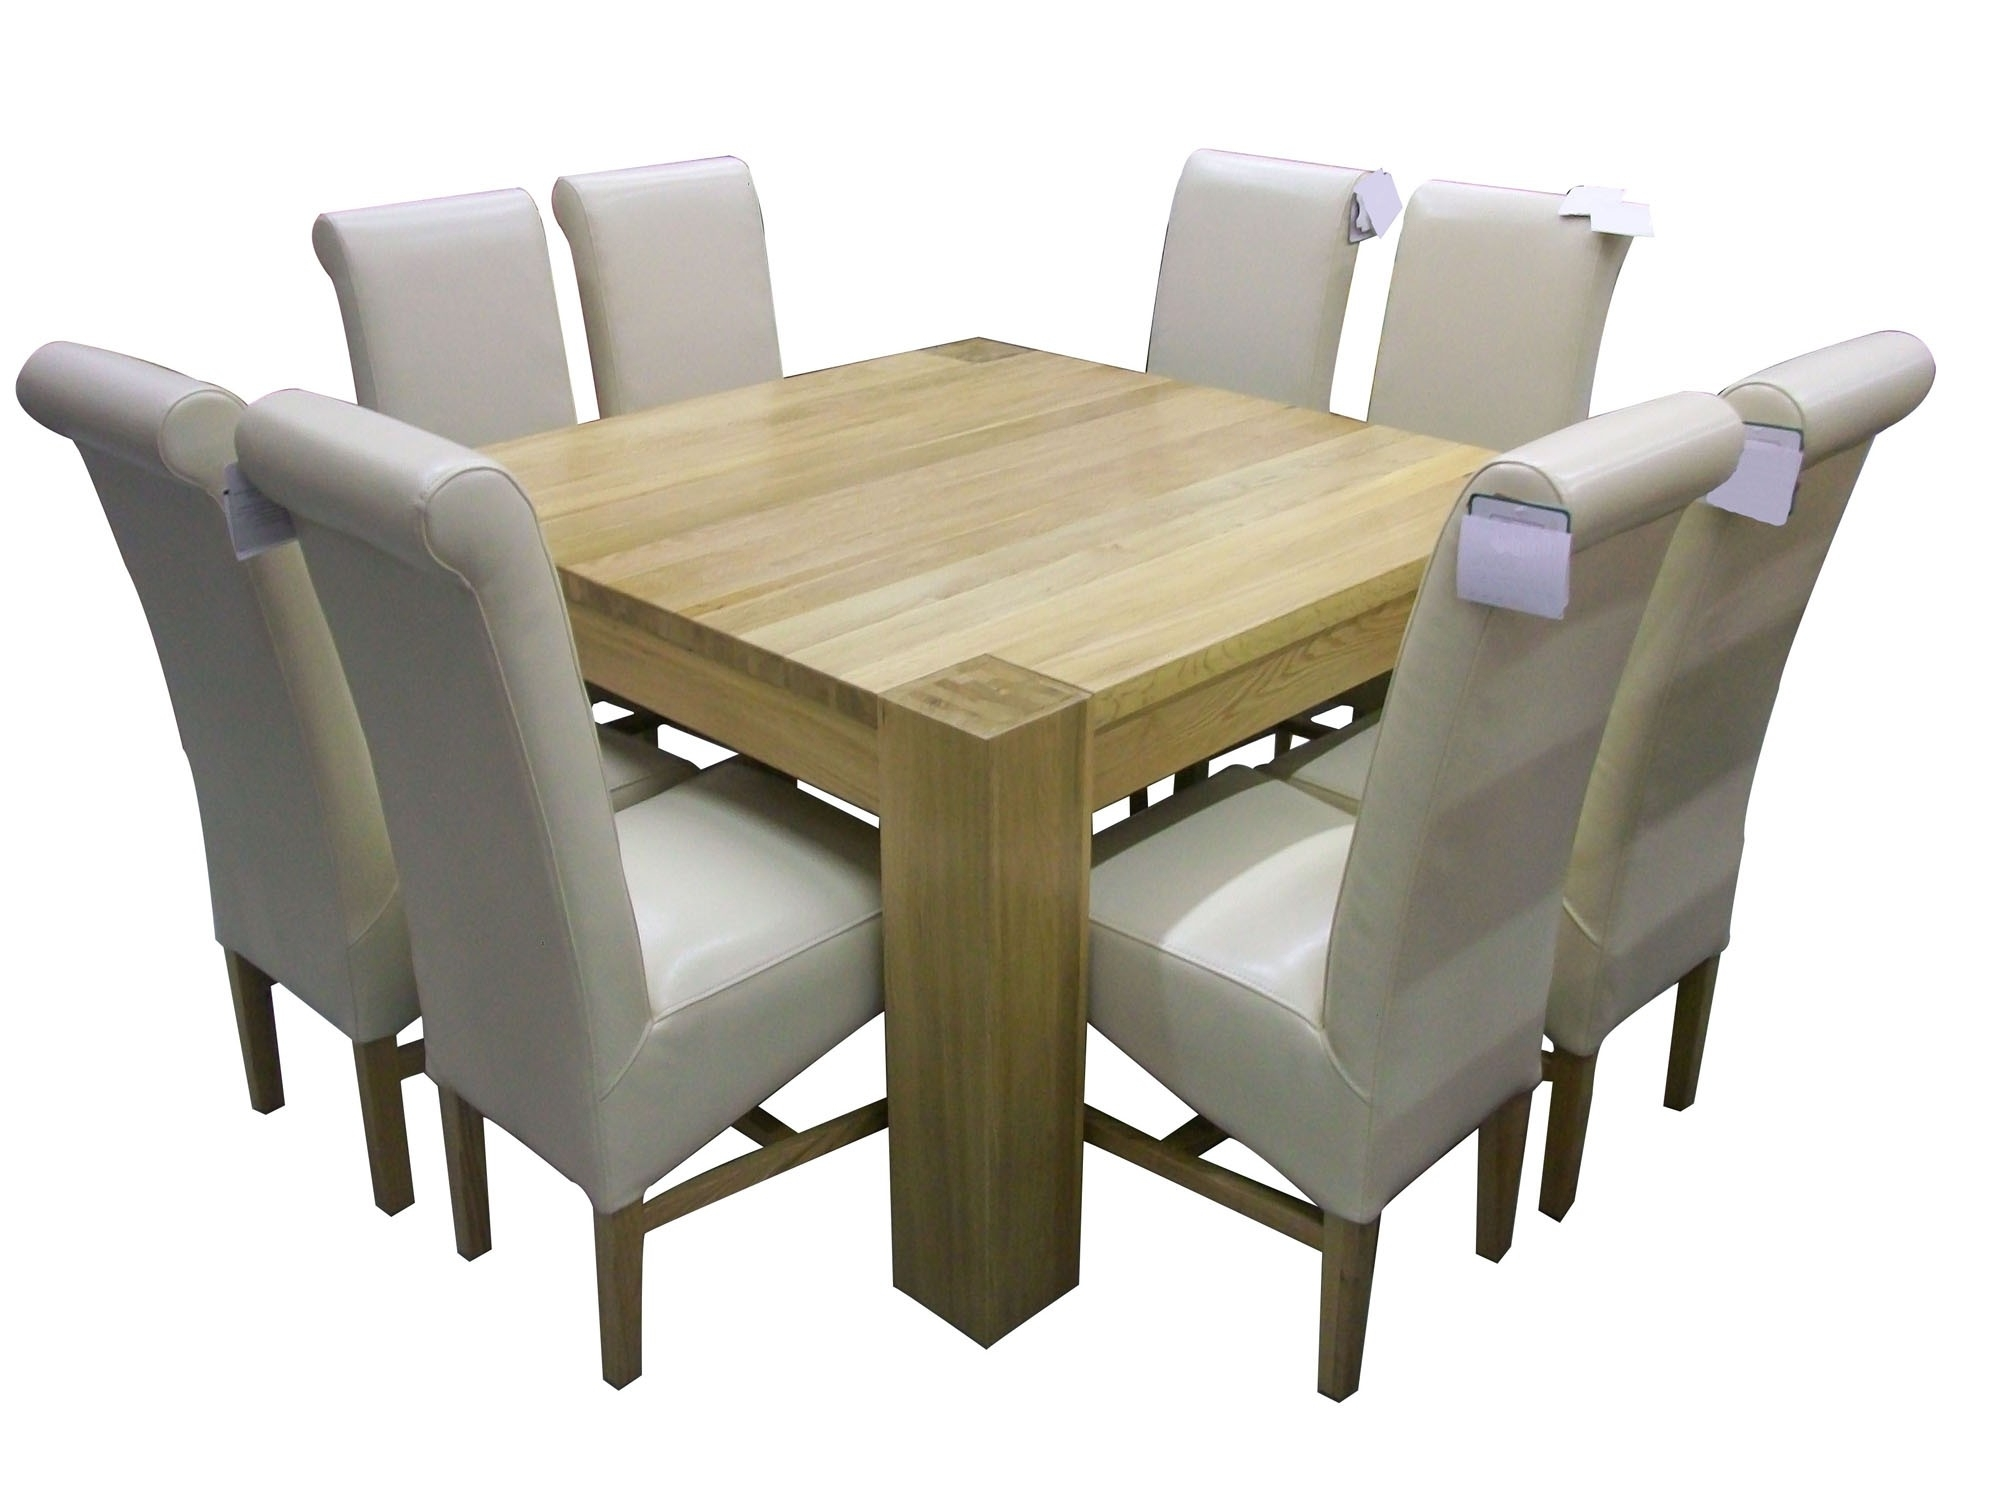 Oak Dining Tables 8 Chairs Inside Latest Solid Oak Dining Room Table And 8 Chairs Inspirational White Square (View 20 of 25)